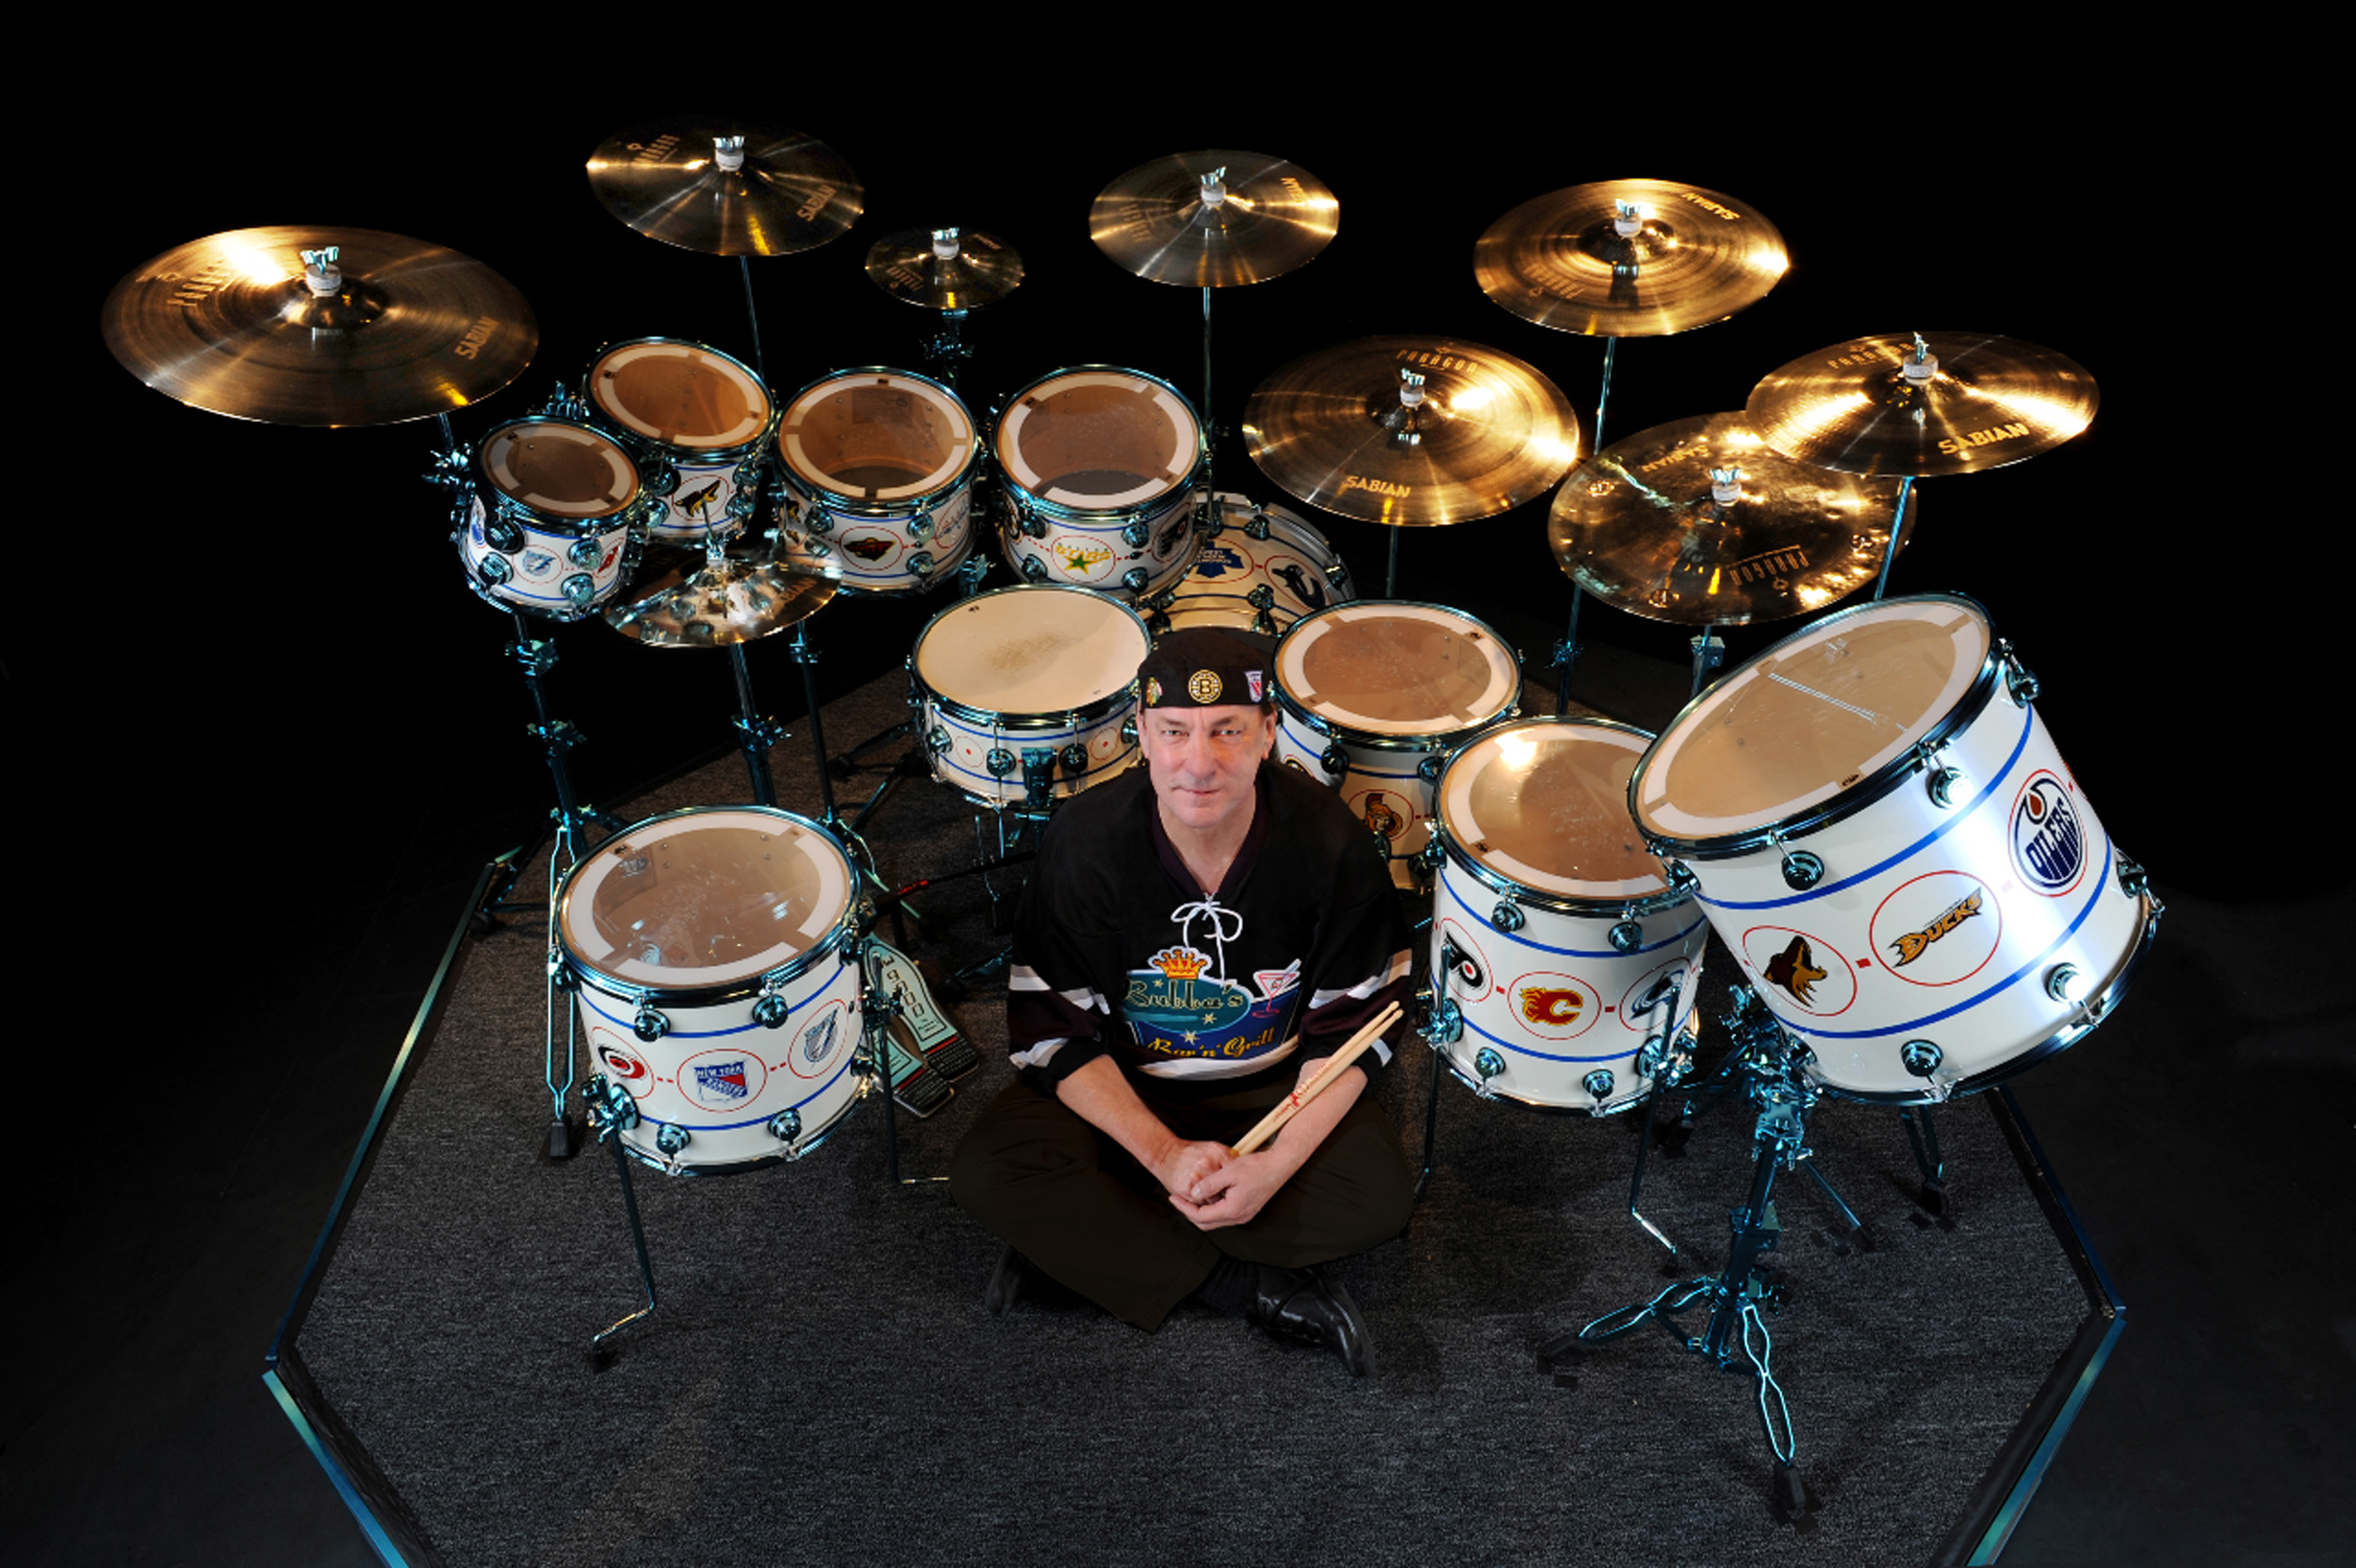 Neil Peart S News Weather And Sports Archives February 2010 Entry